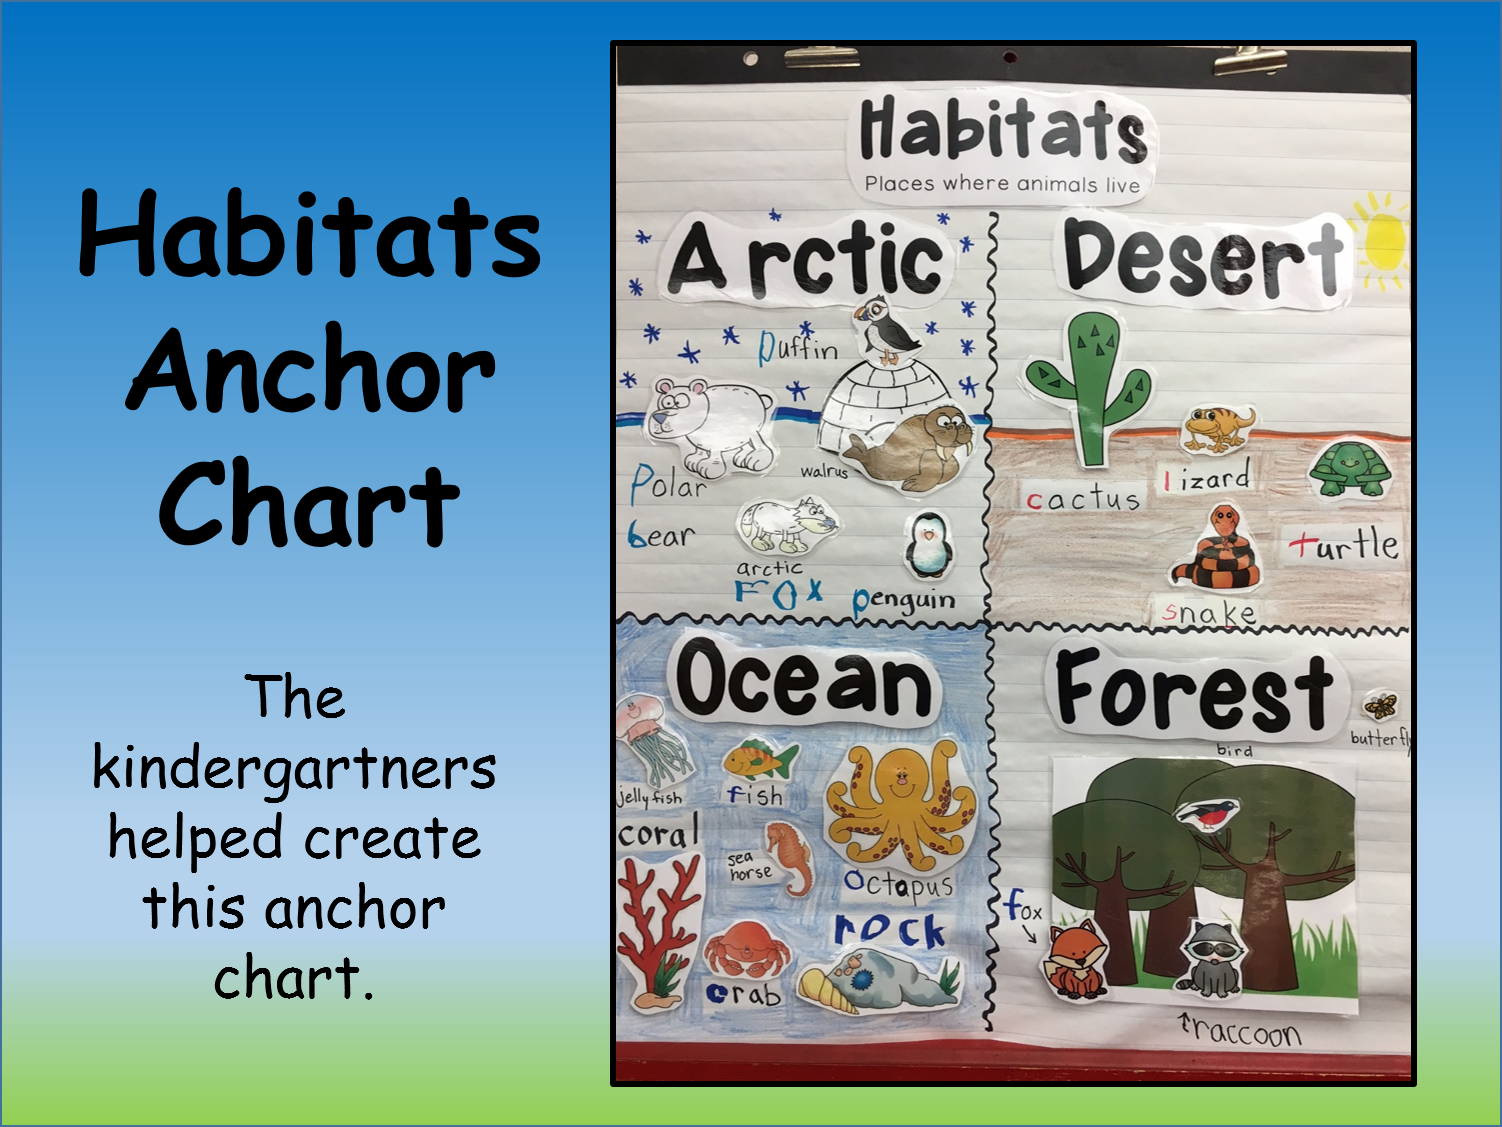 This past week we learned about habitats since it also